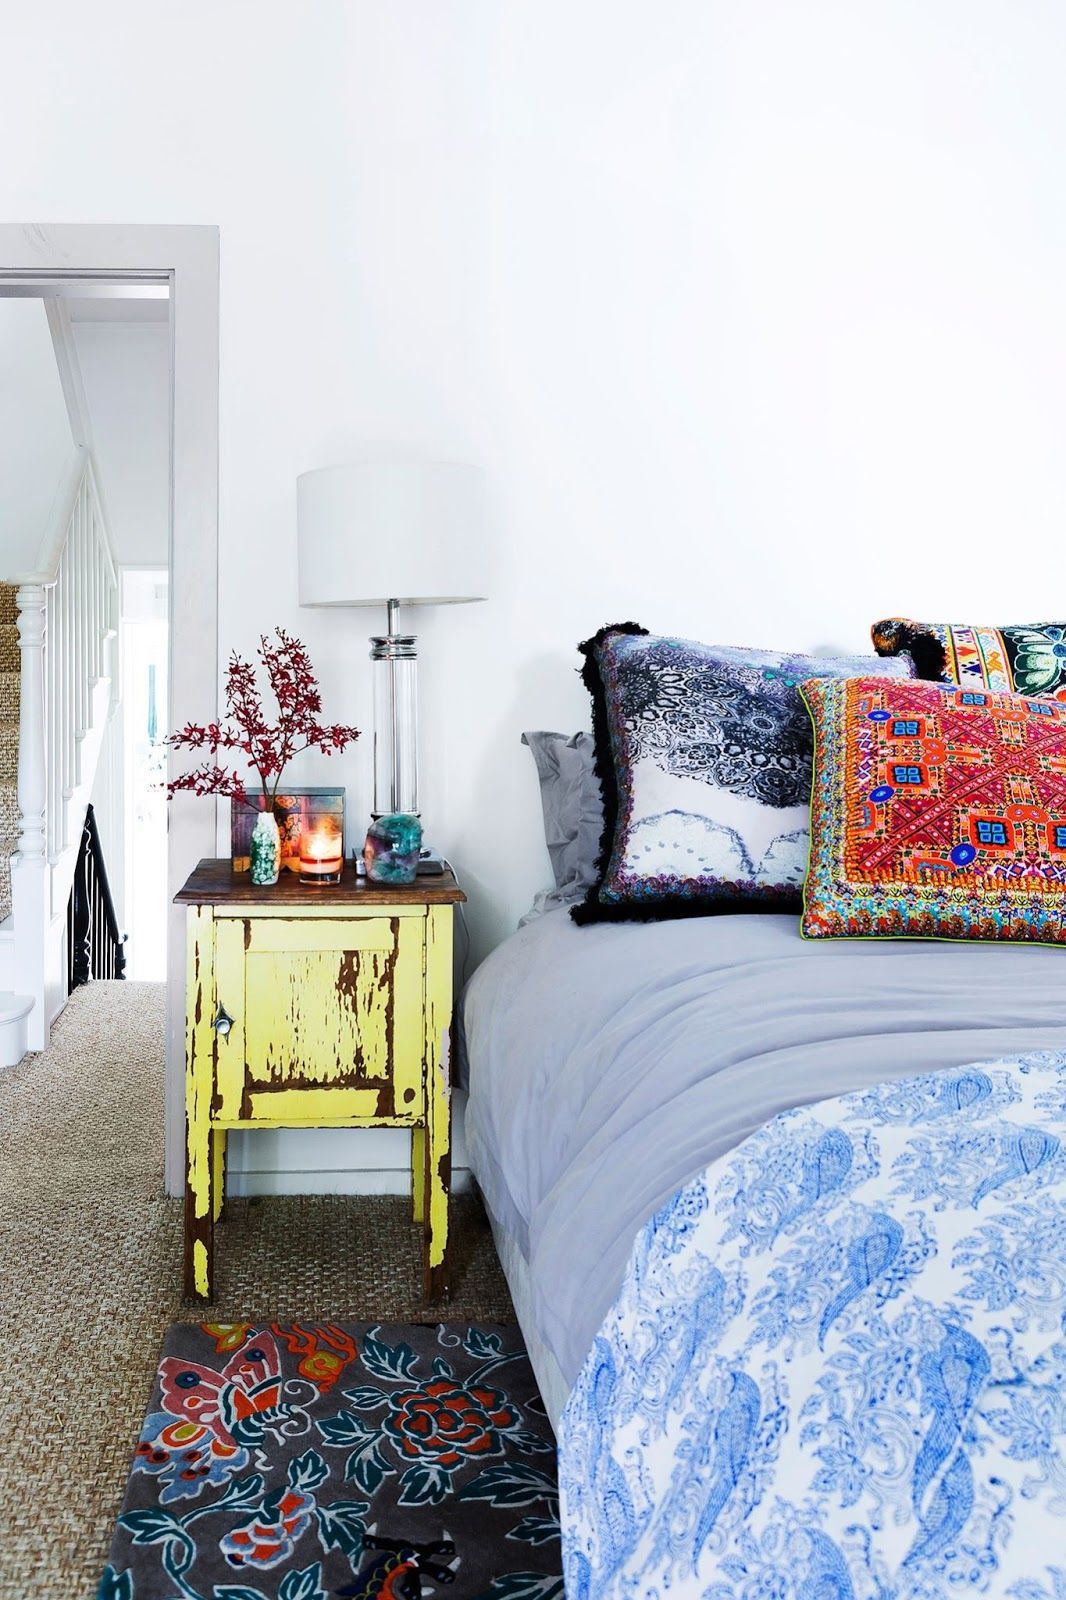 Eclectic Room Design: 40 Bohemian Bedrooms To Fashion Your Eclectic Tastes After